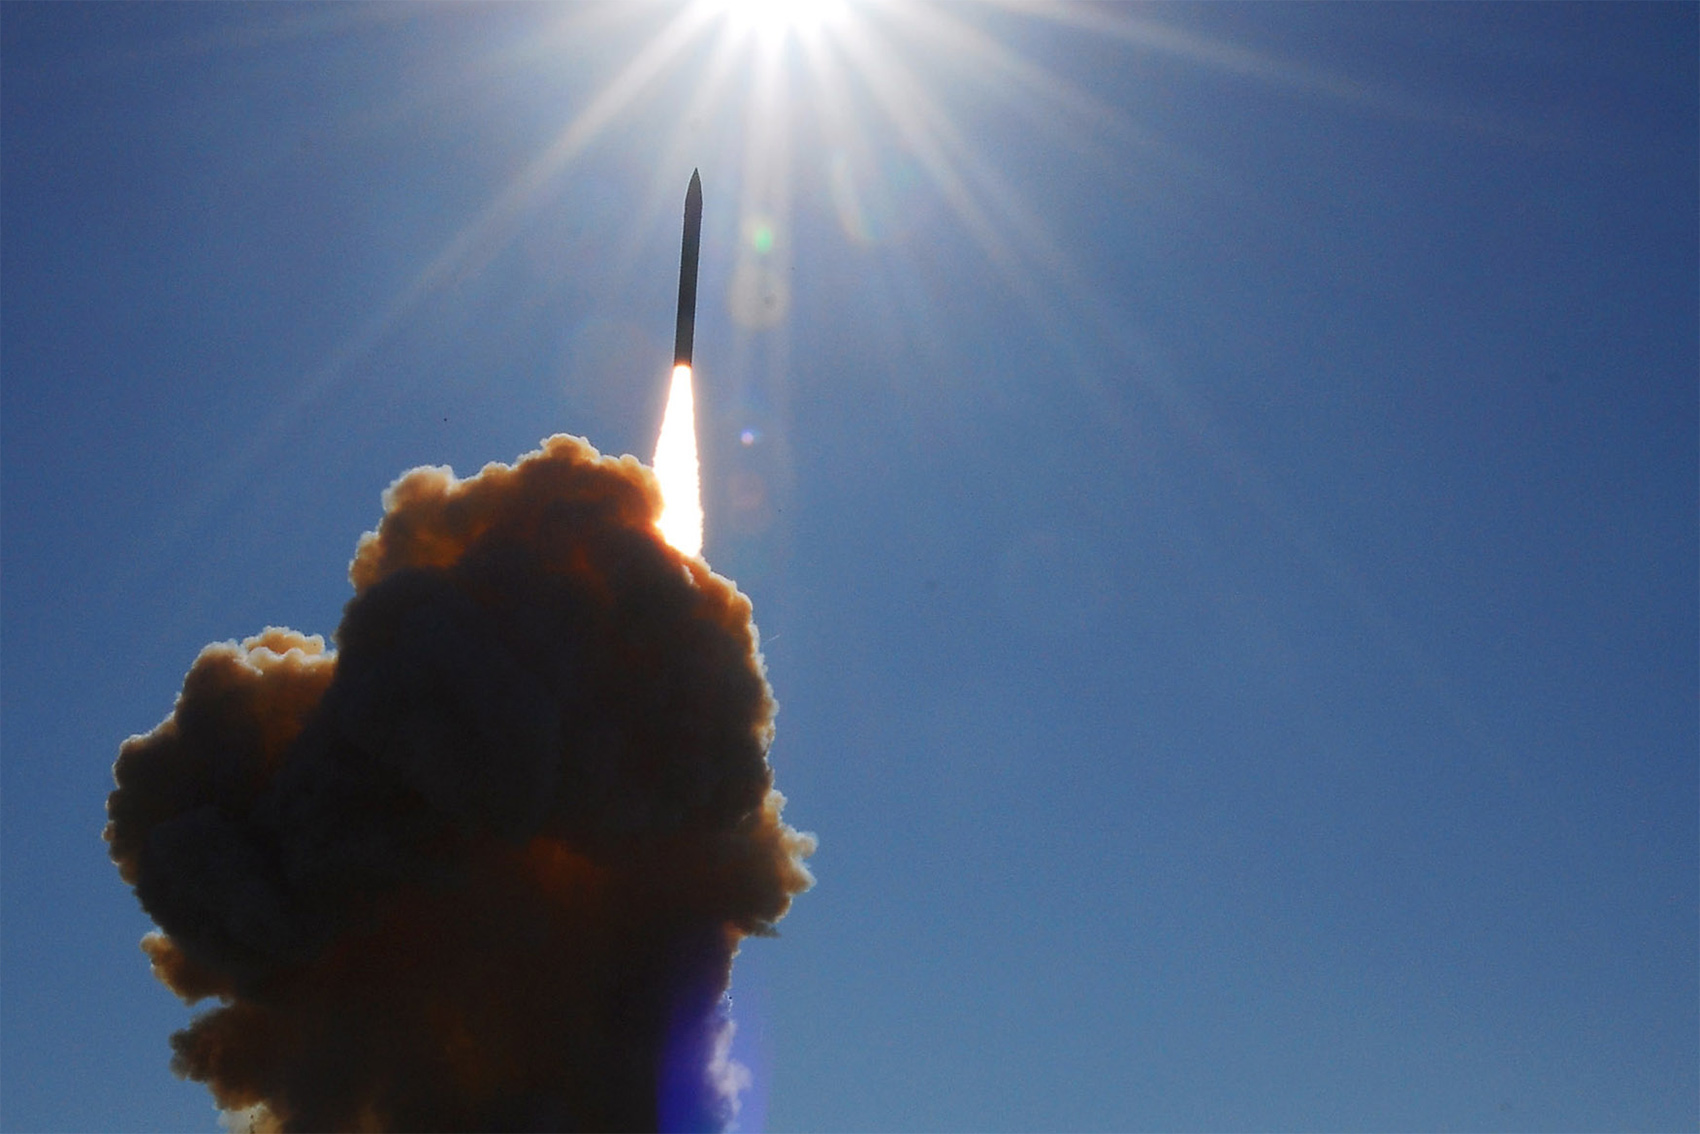 How Raytheon Aims To Detect And Fight Nuclear Weapon Threats On The ...